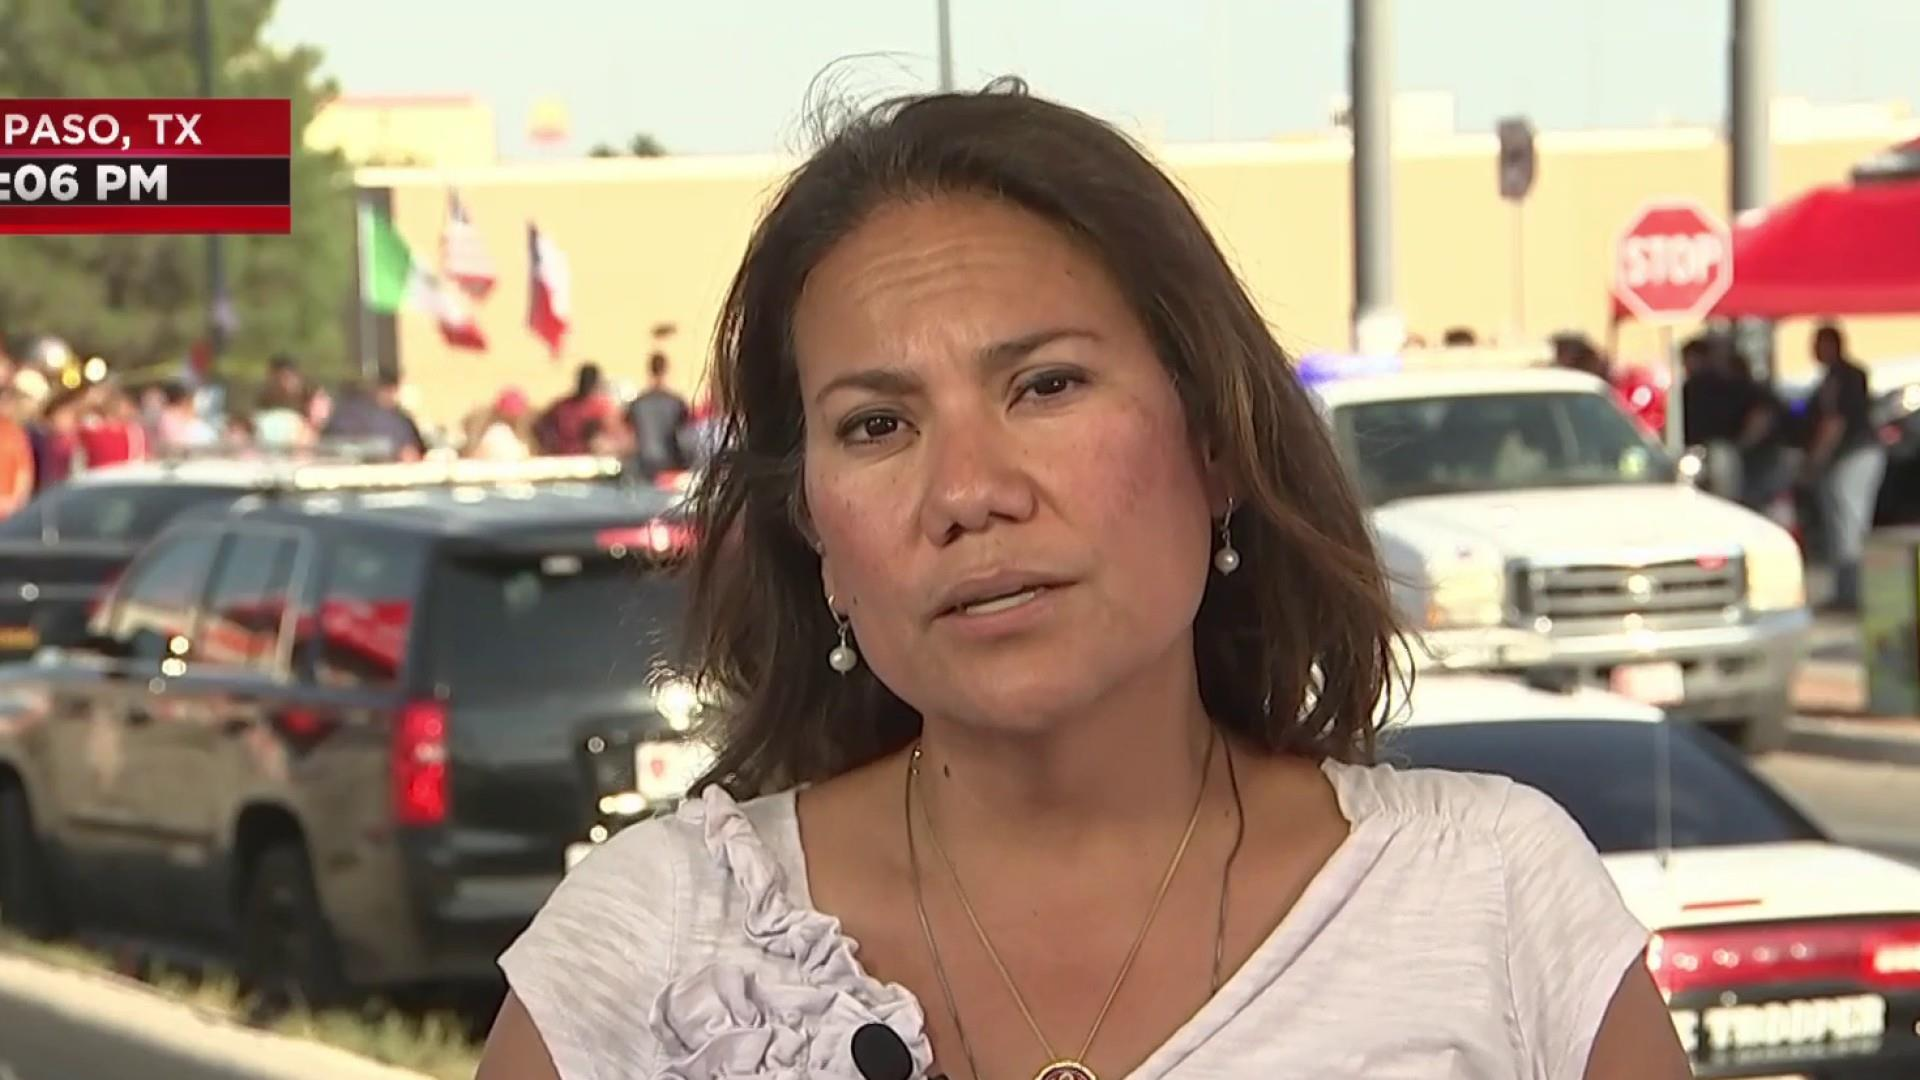 El Paso victims on Trump: 'Tell him not to come here'